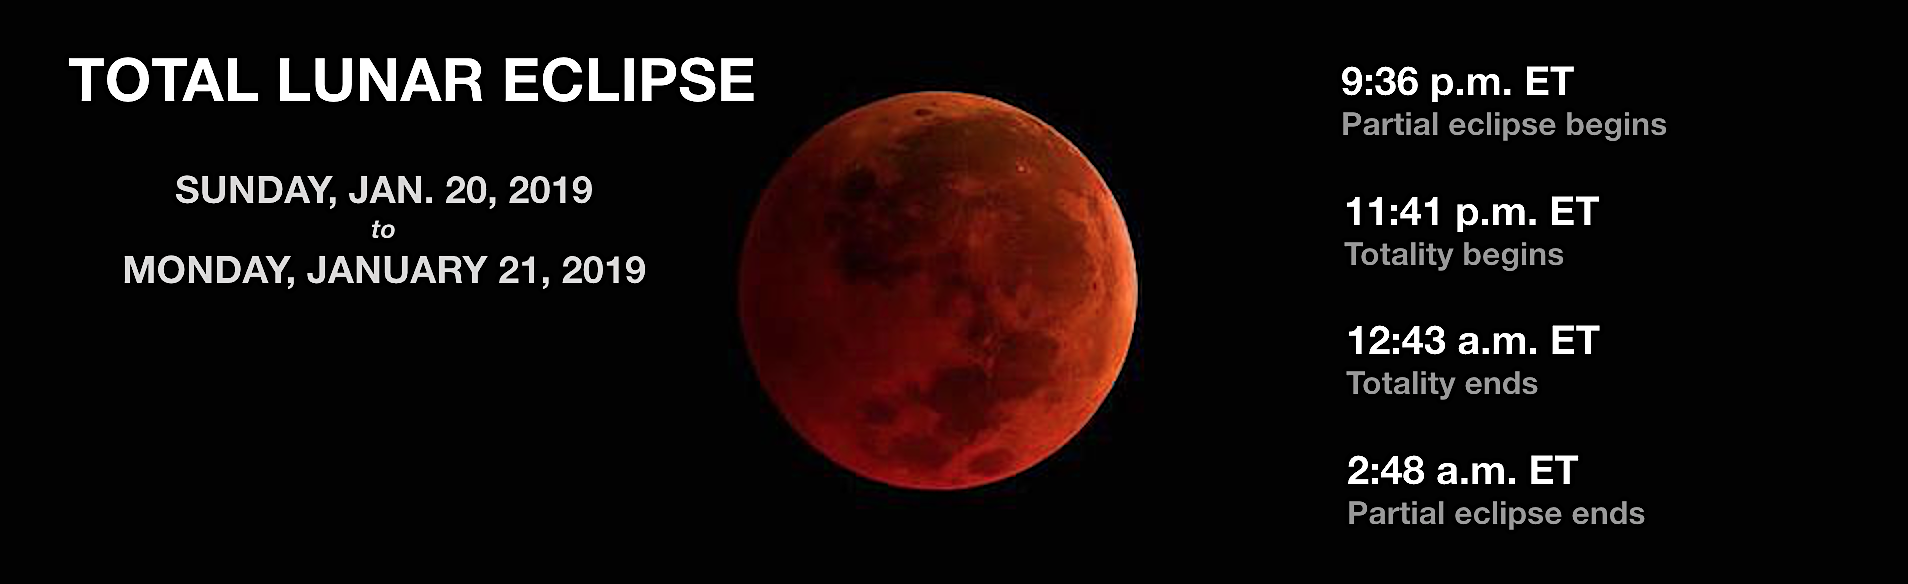 Super Blood Wolf Moon and Total Lunar Eclipse 2019